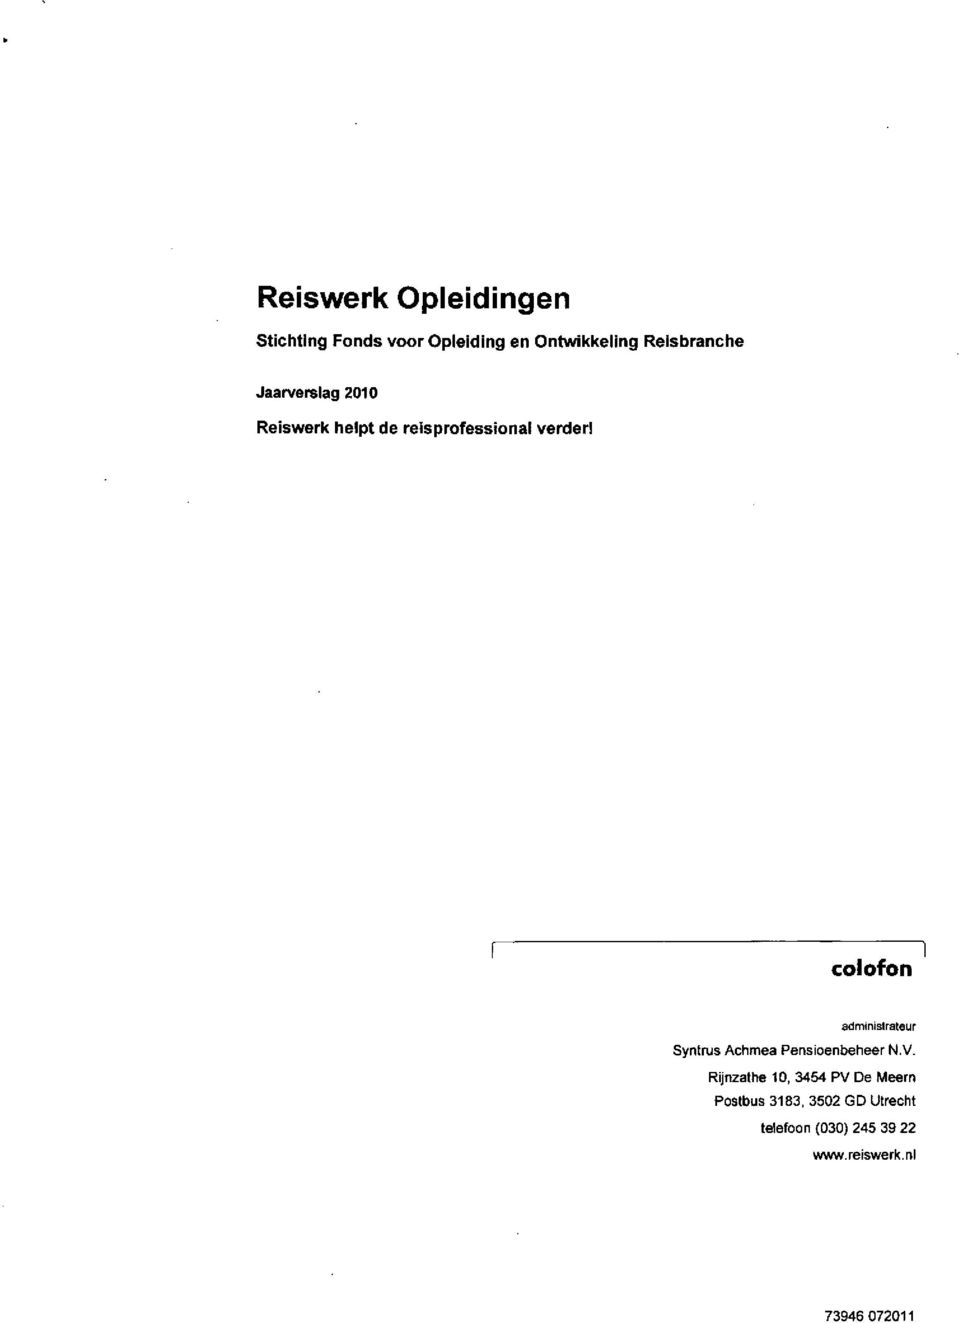 colofon administrateur Syntnjs Achmea Pensioenbetieer N.V.